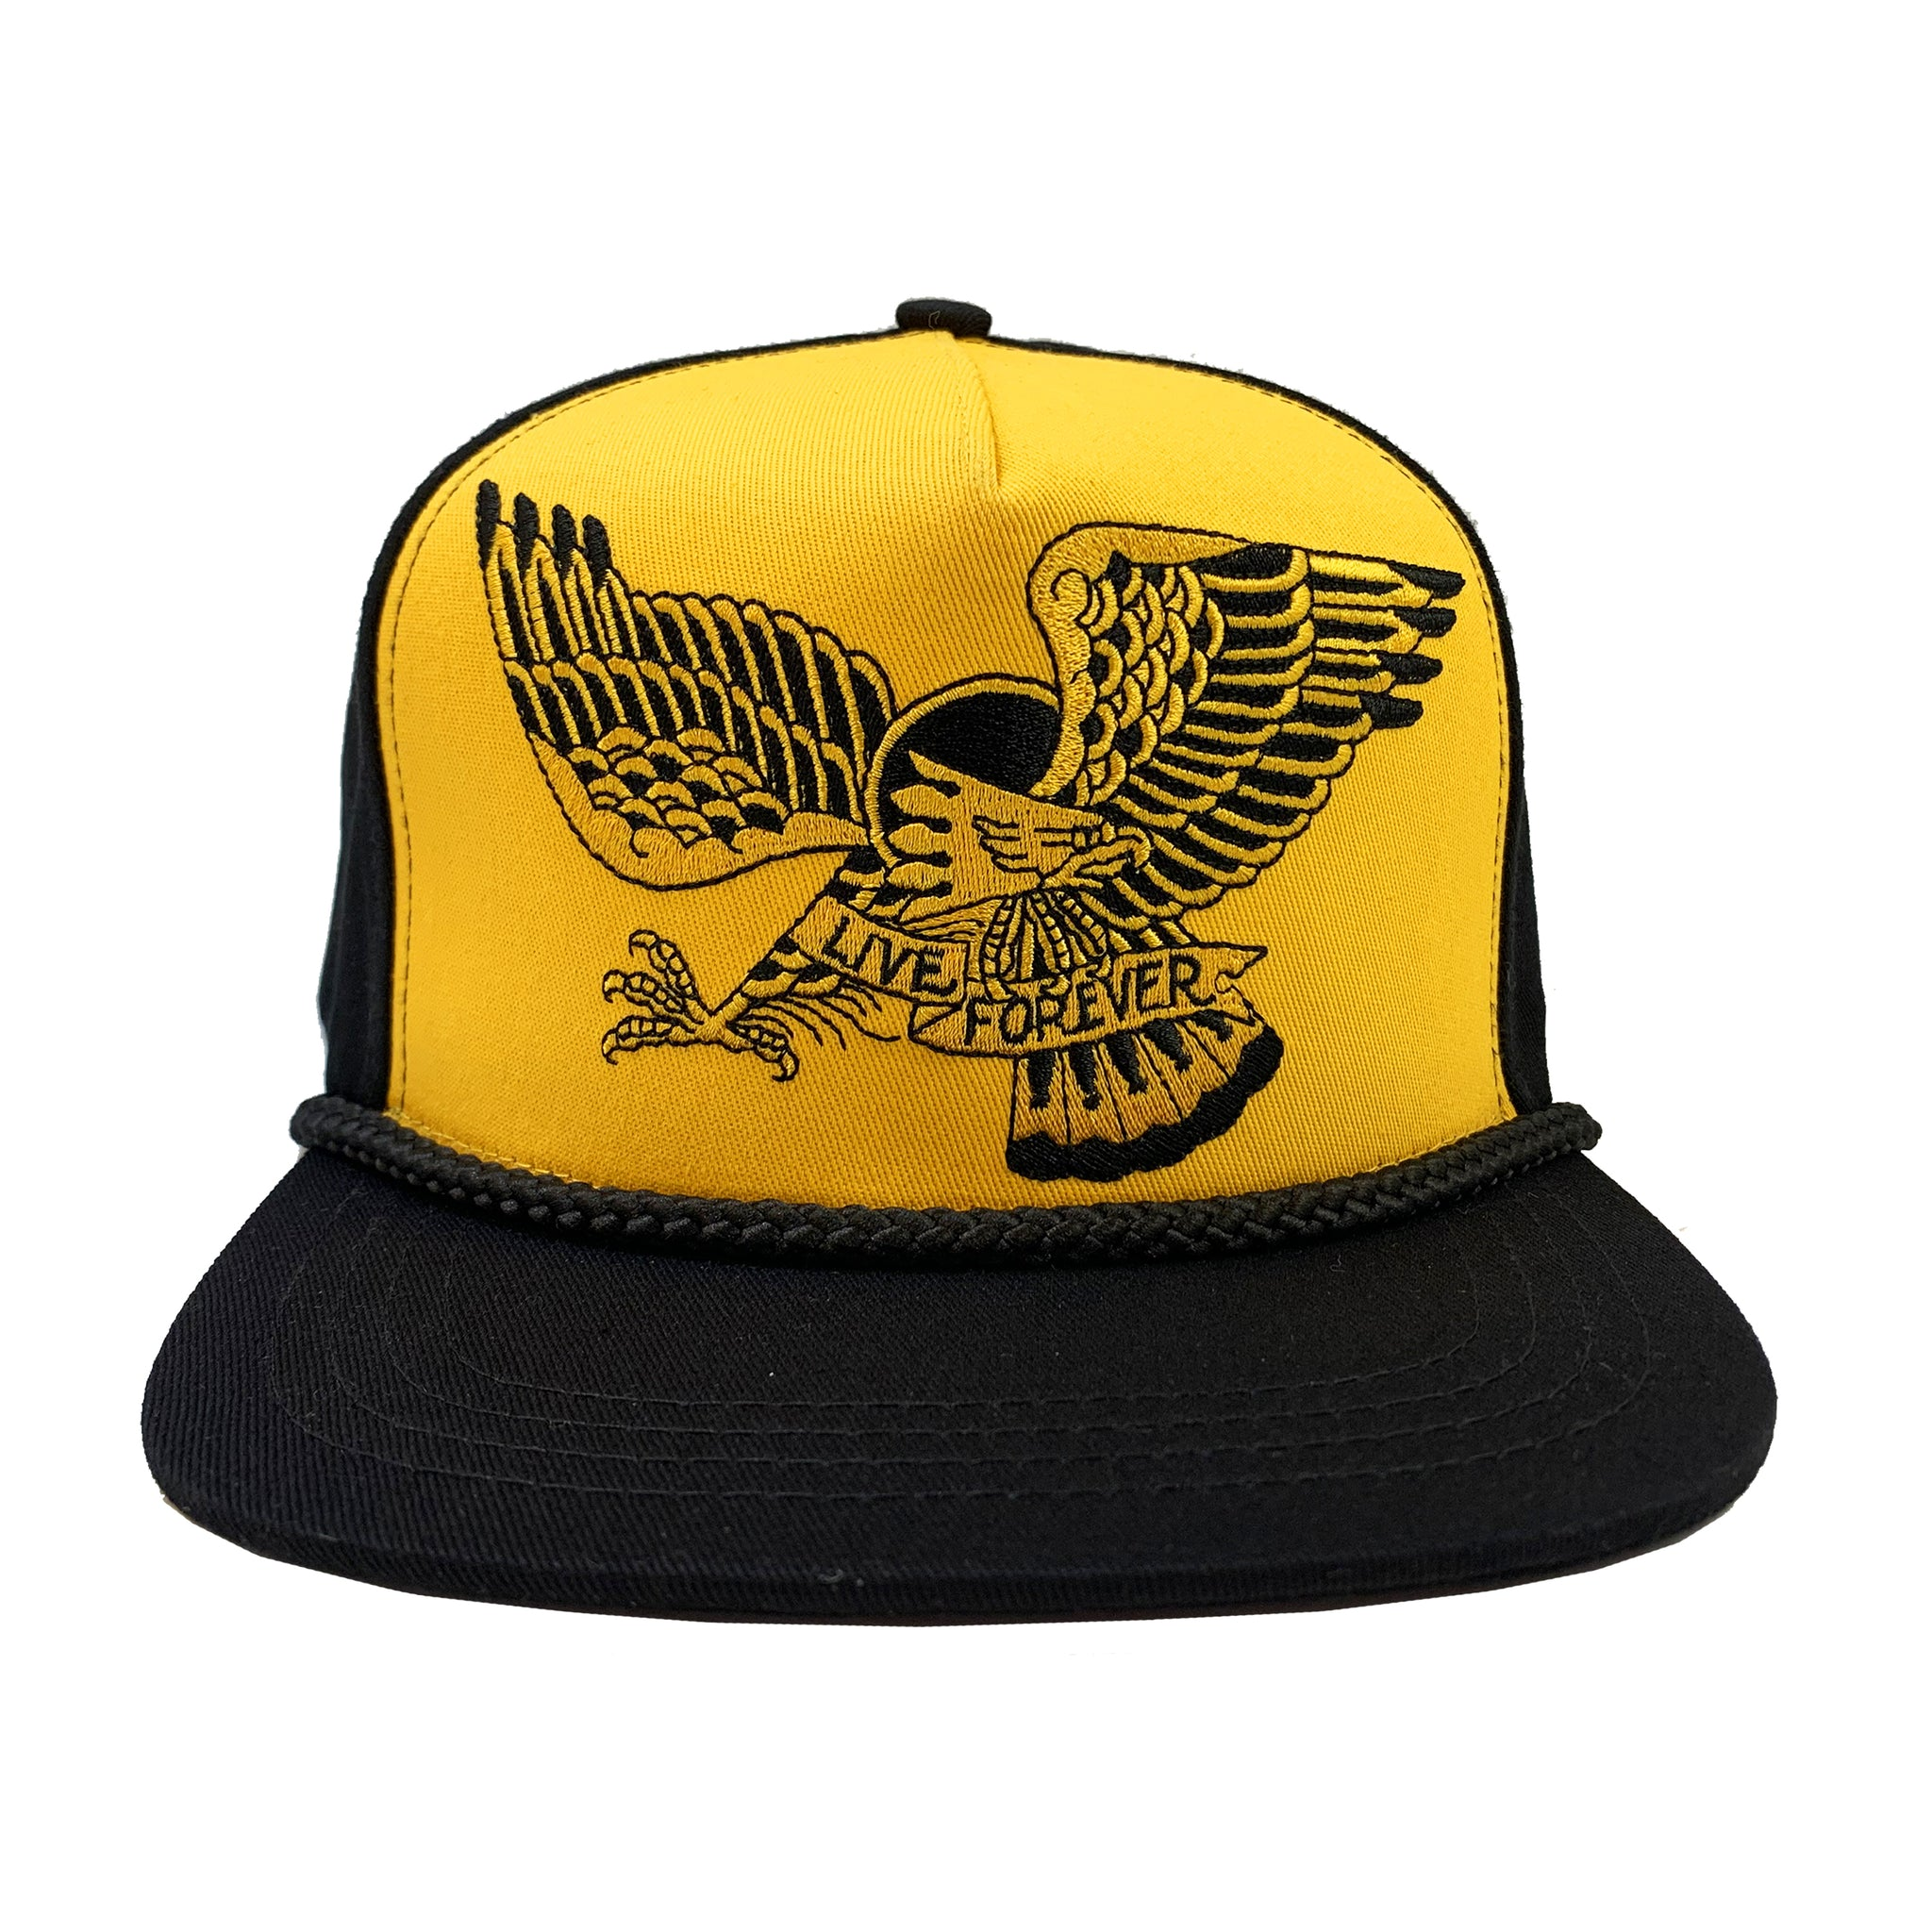 Live Forever Cap Gold Edition